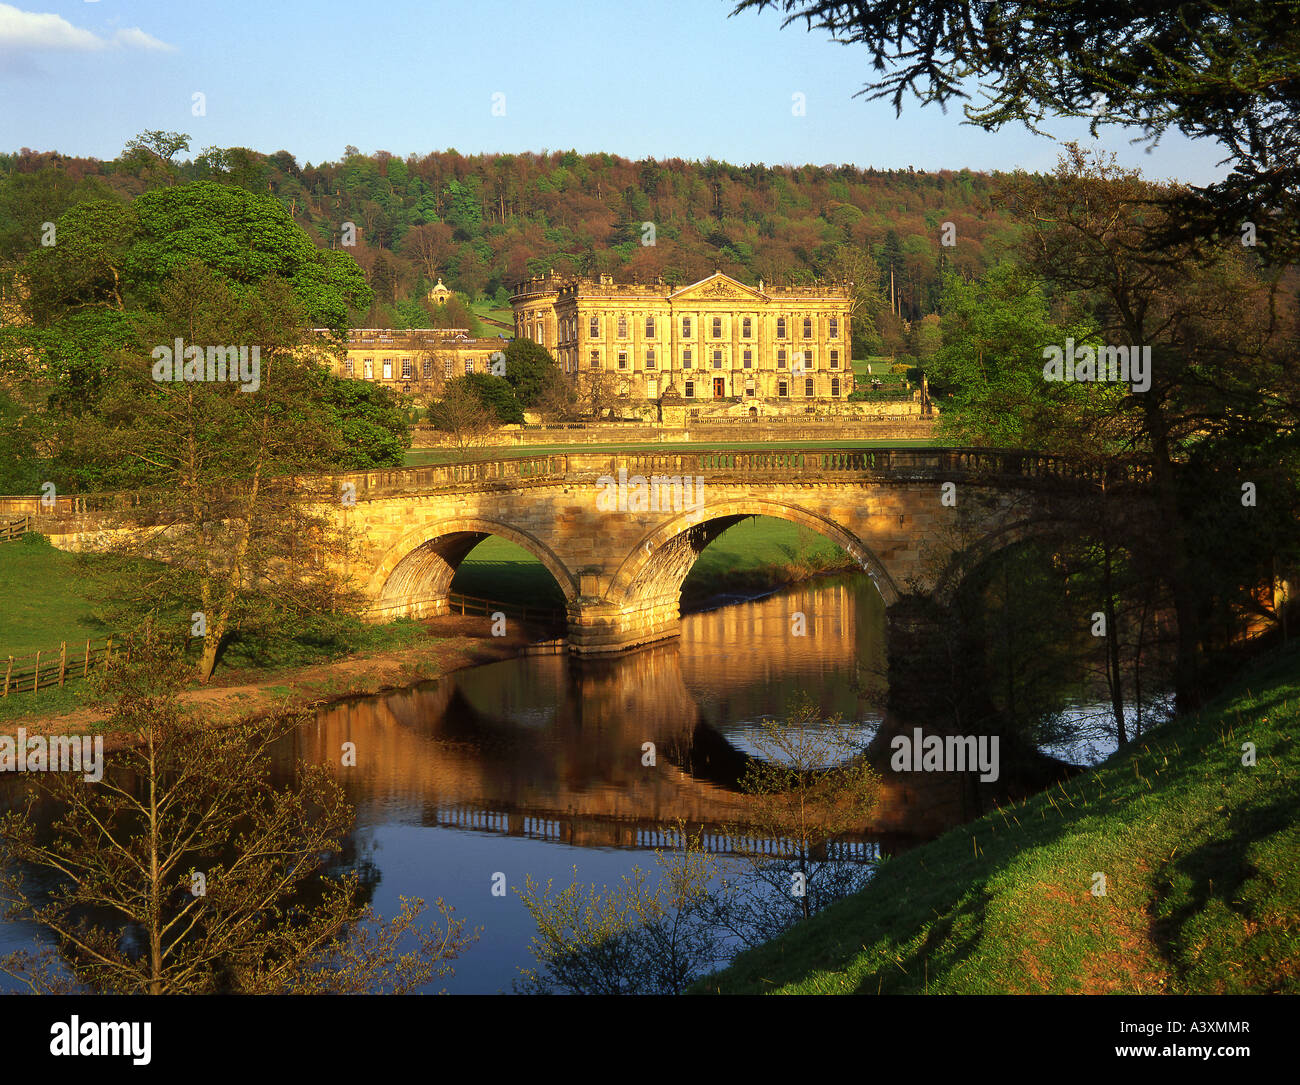 Chatsworth 3 Piece Traditional White Suite: Chatsworth House And The River Derwent, Peak District